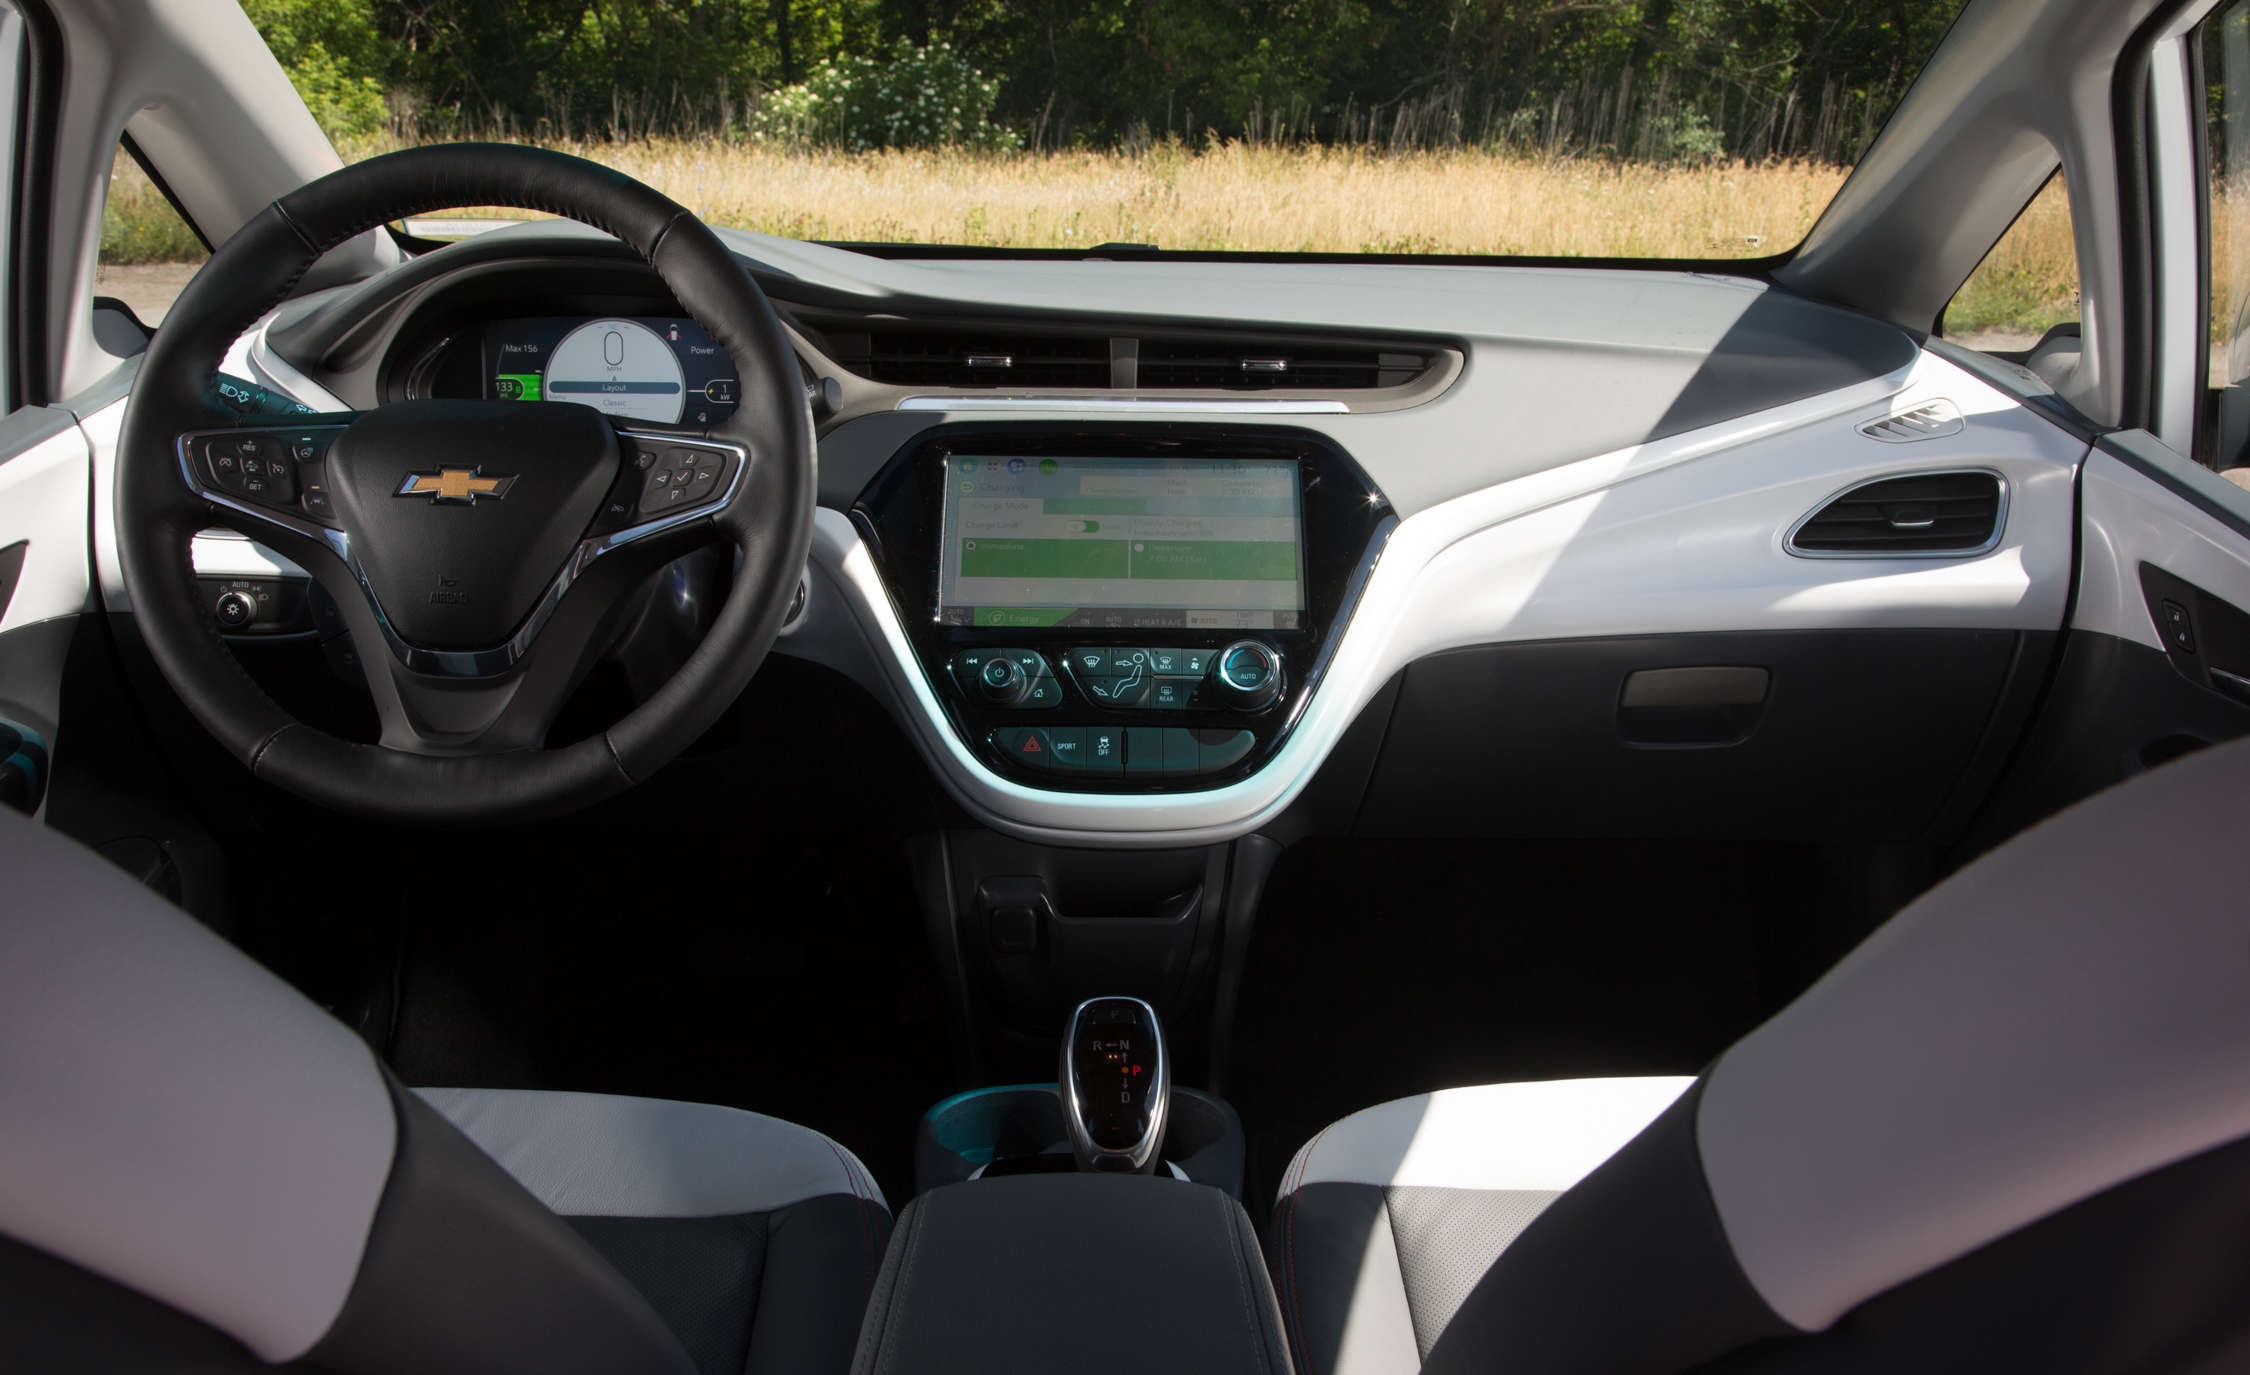 2017 Chevrolet Bolt Ev Interior Dashboard (Photo 7 of 12)